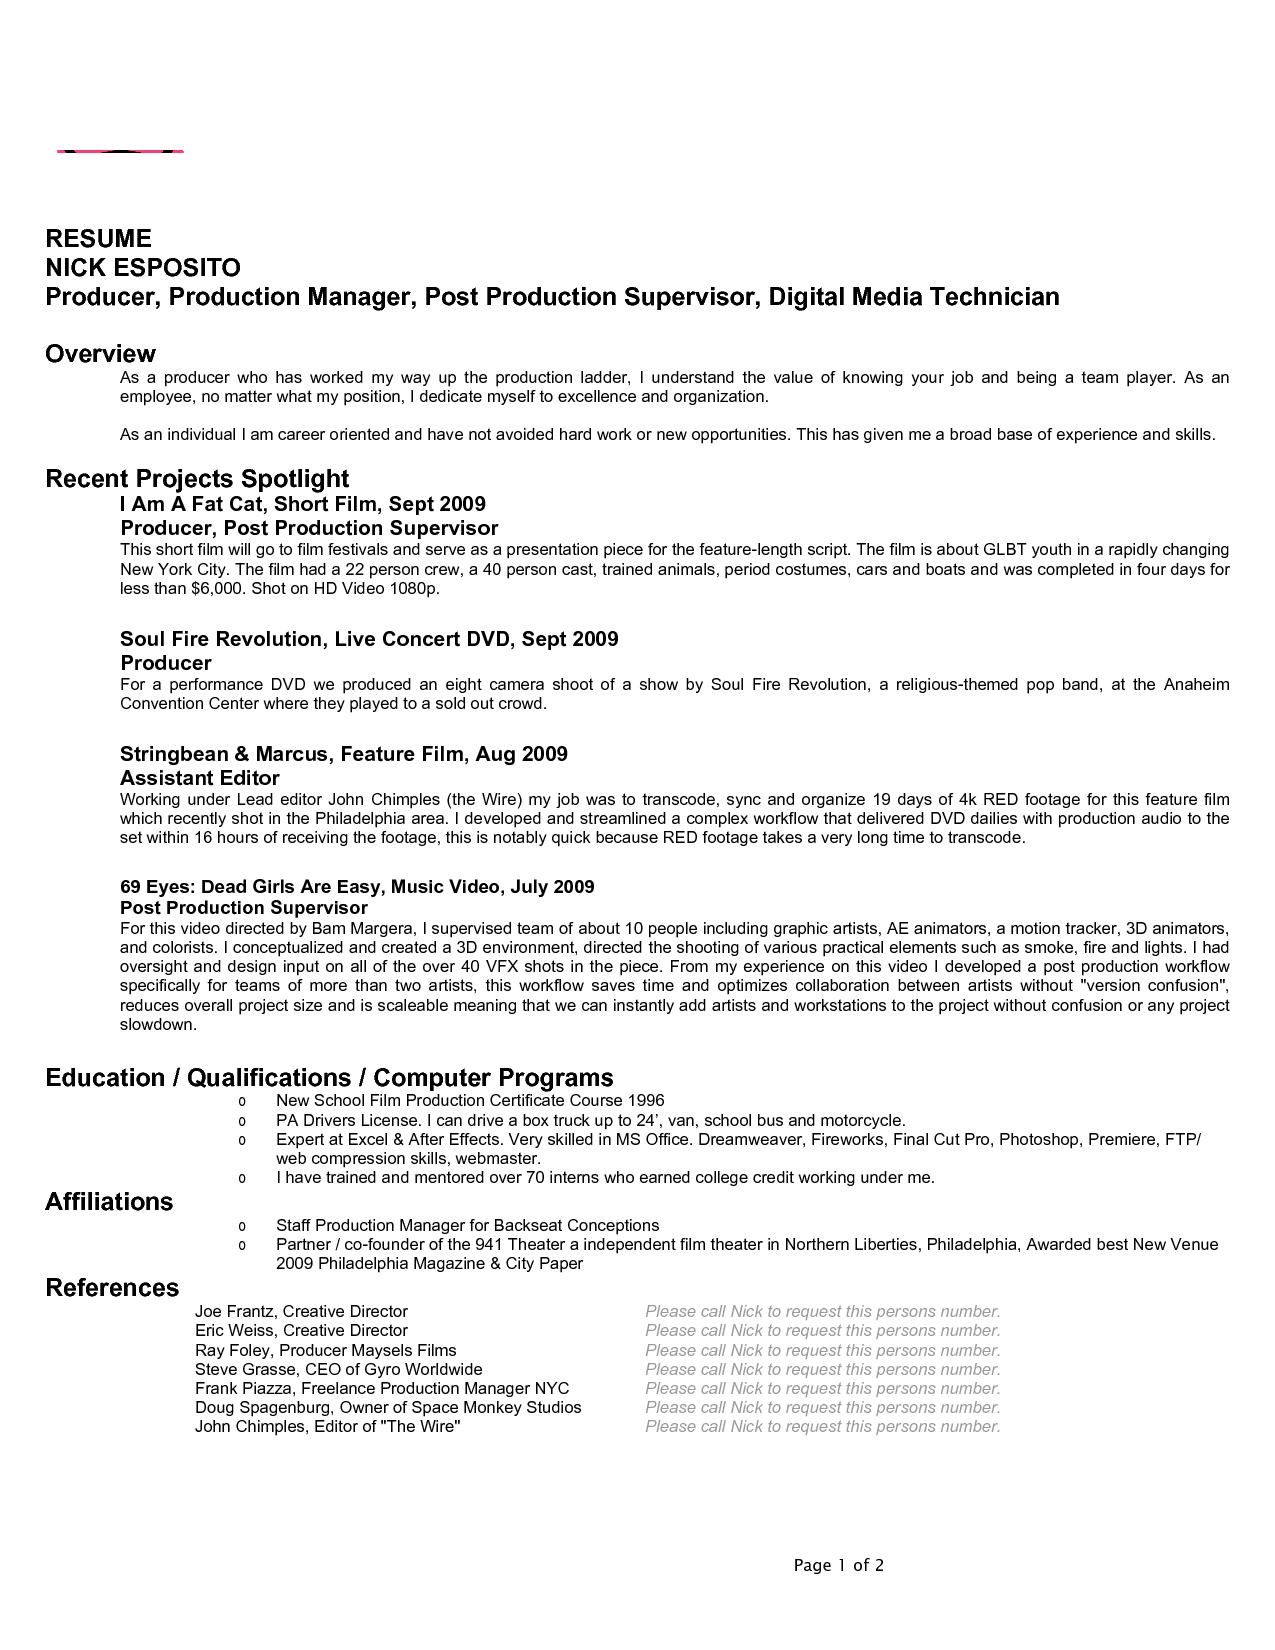 Tv Production Manager Resume Custom Film Producer Resume  Google Search  Research  Pinterest  Template